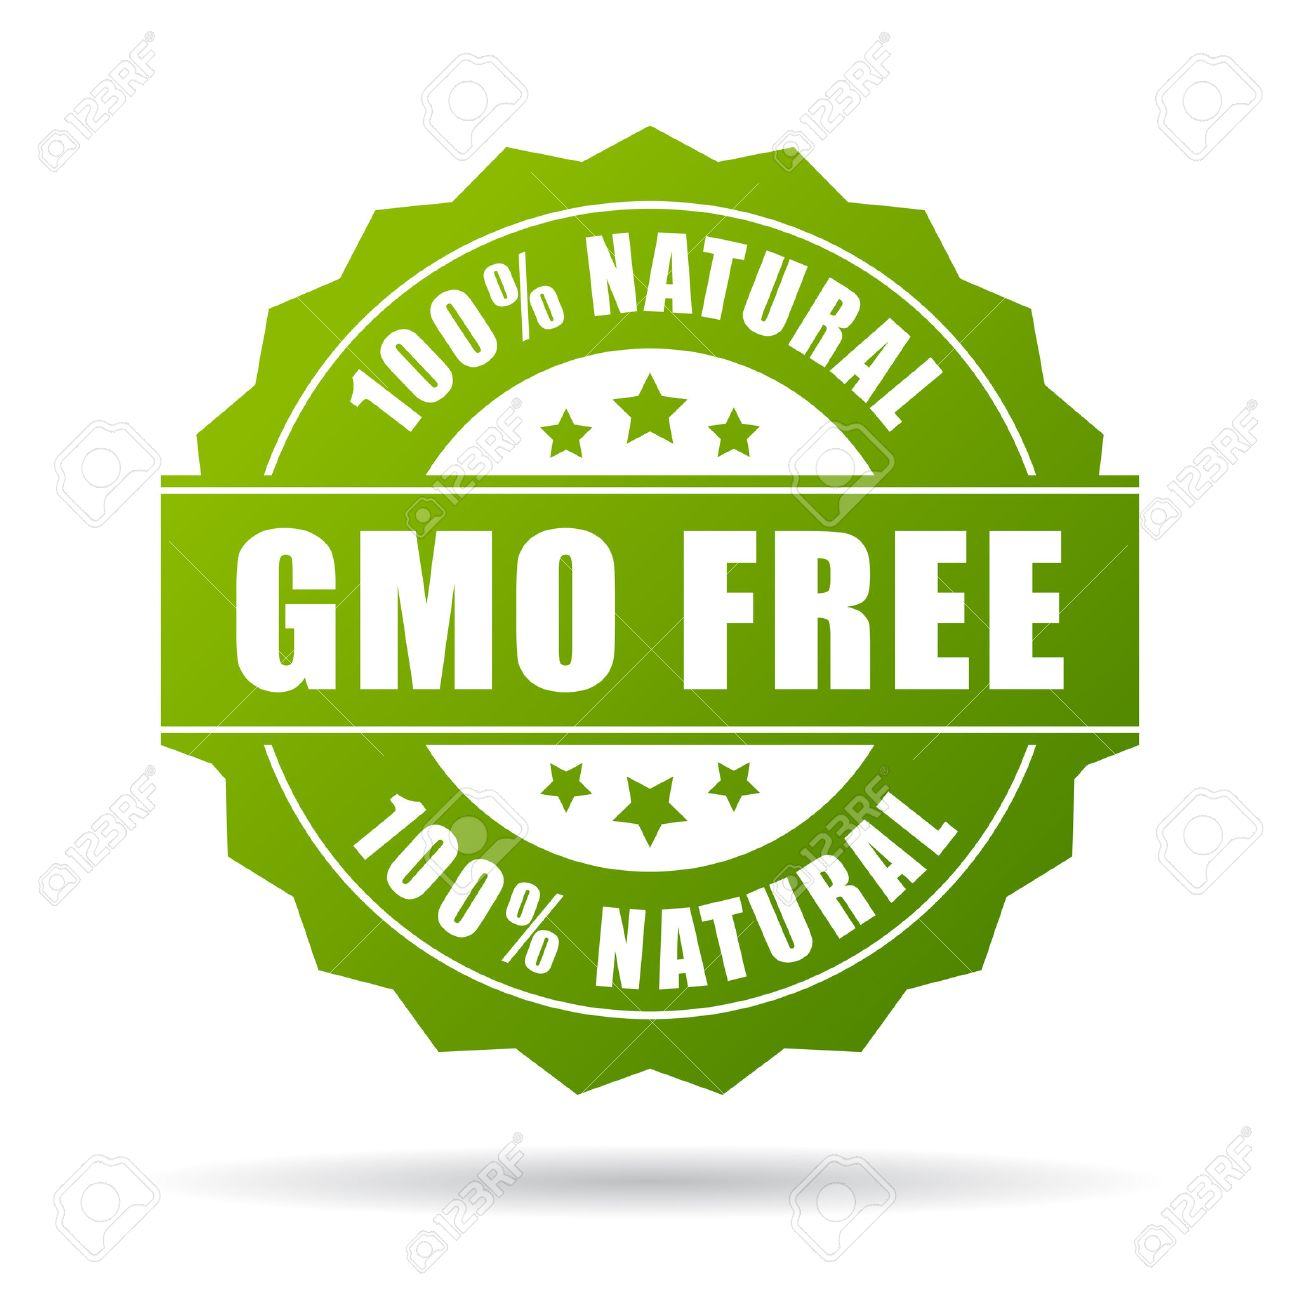 4001 gmo stock vector illustration and royalty free gmo clipart gmo free natural product icon buycottarizona Images